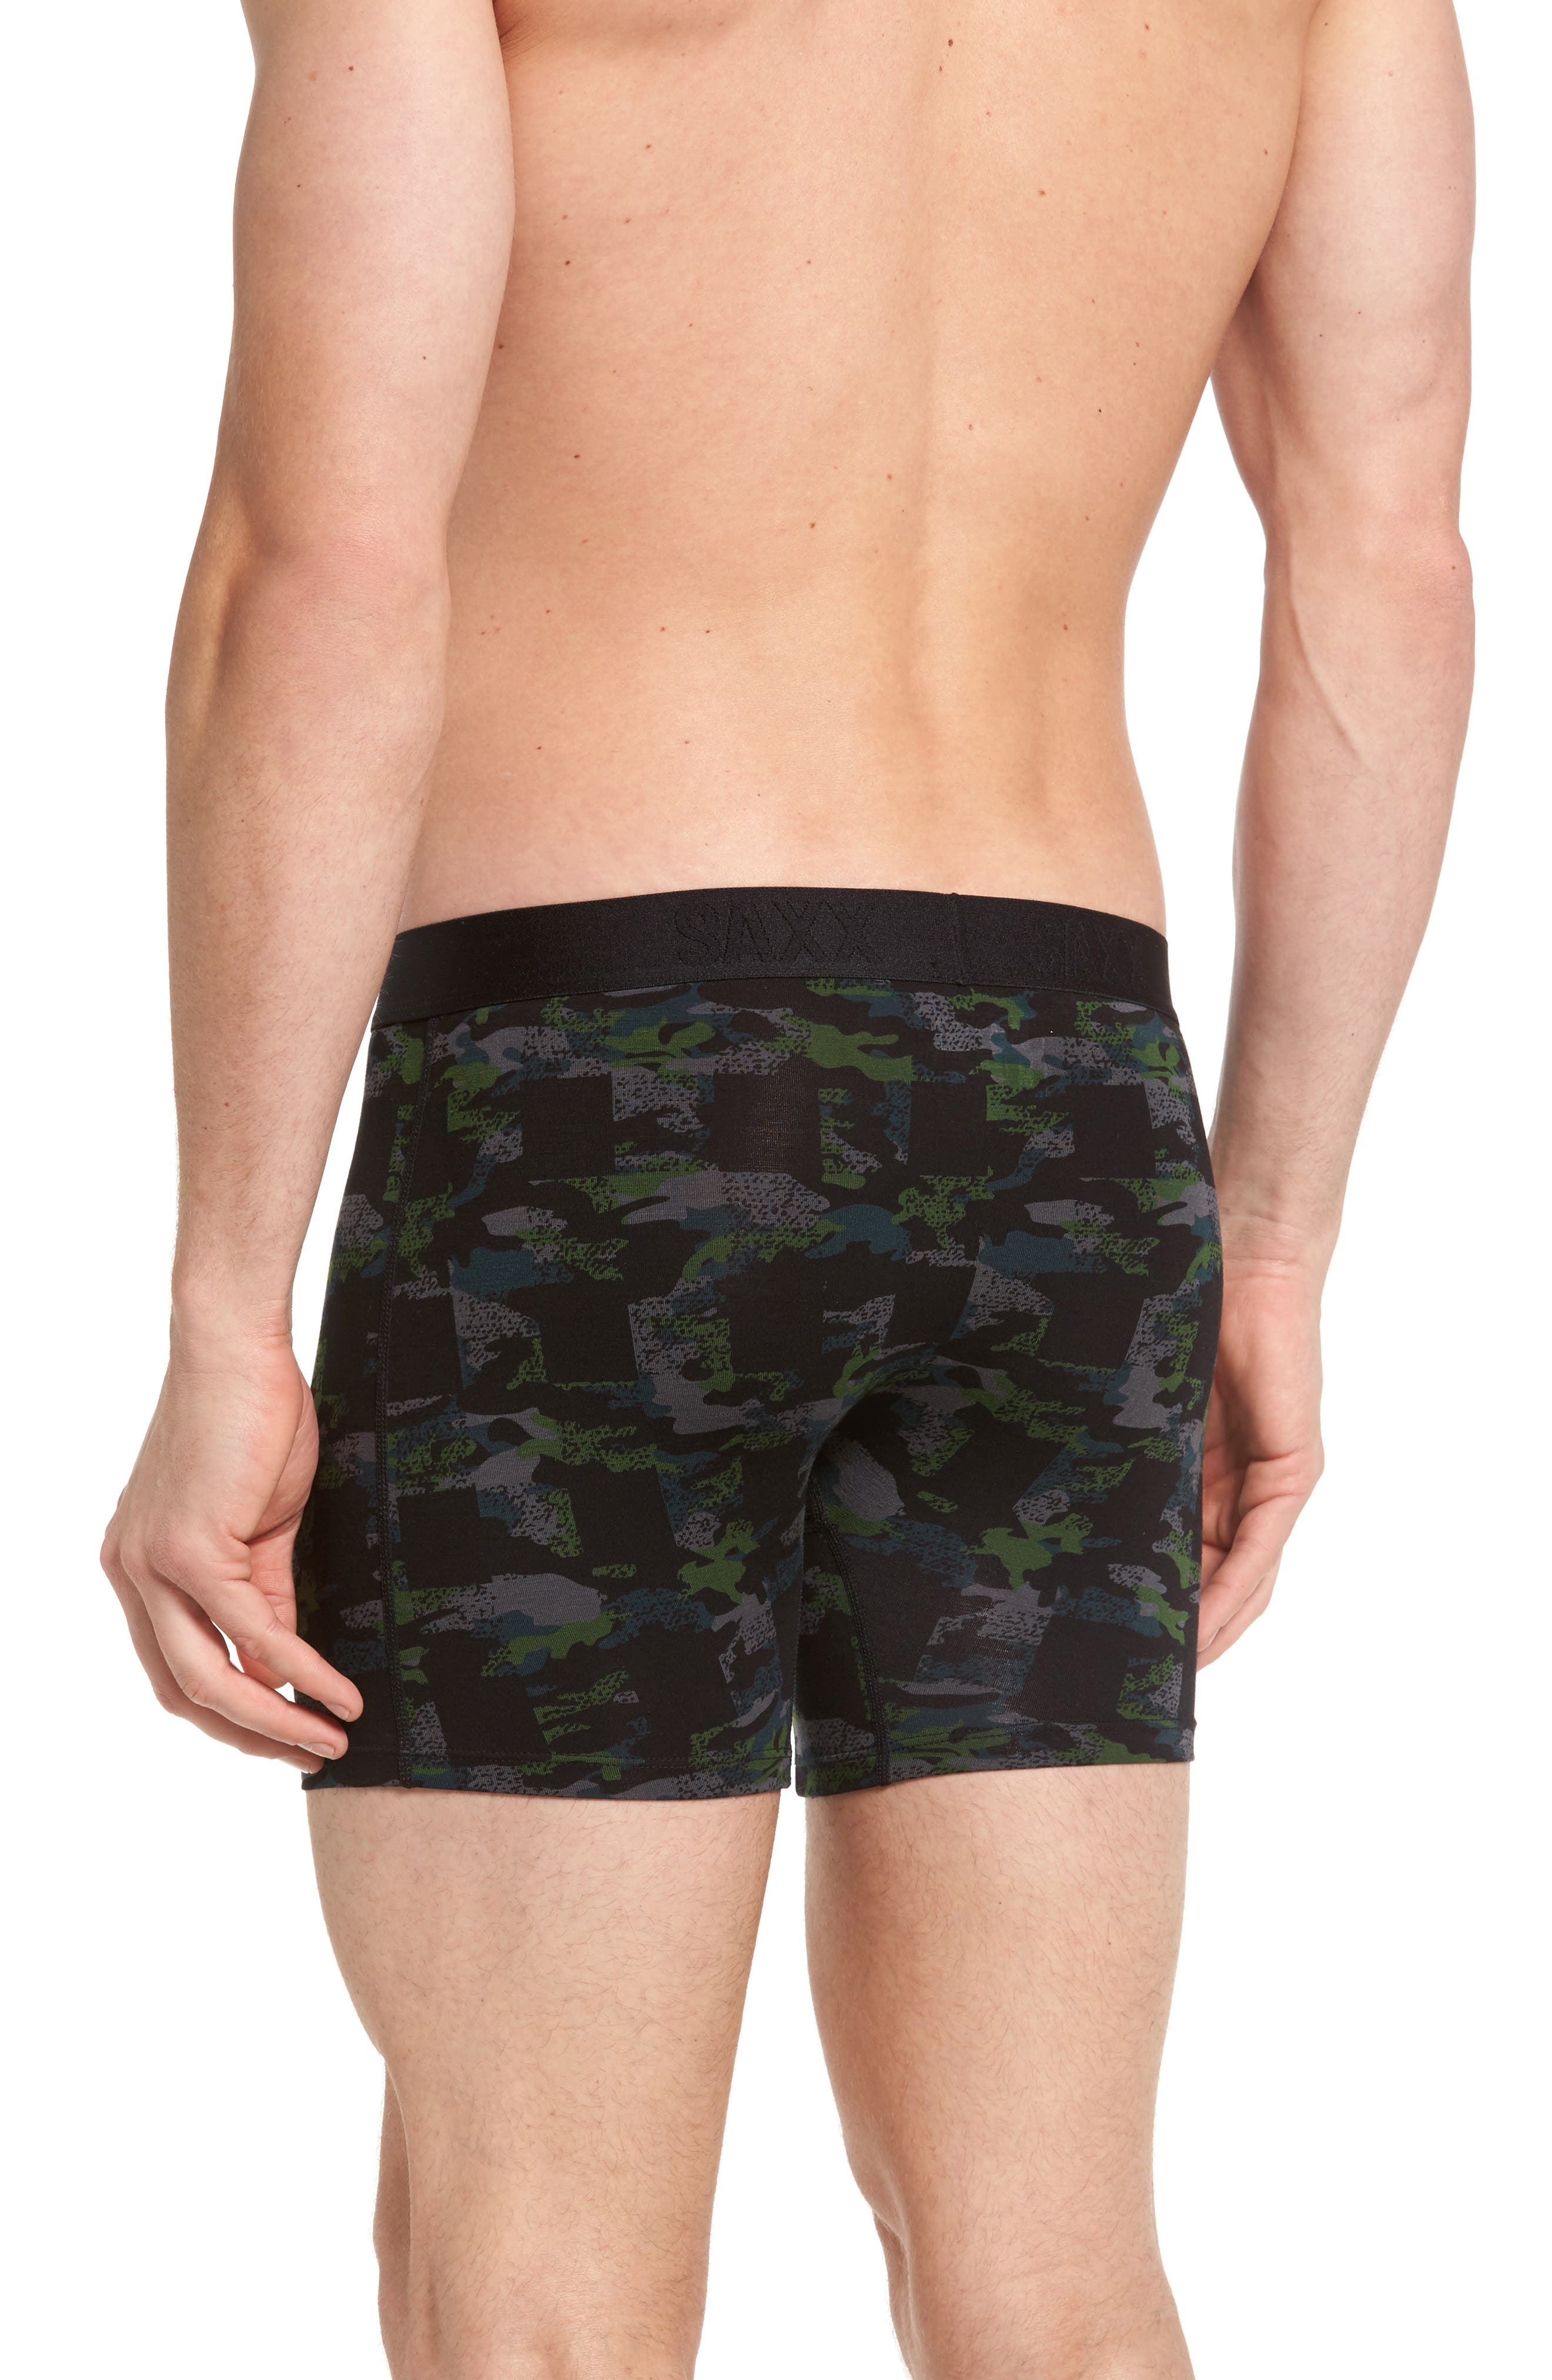 x Kevin Love Vibe Boxer Briefs,                             Alternate thumbnail 2, color,                             300